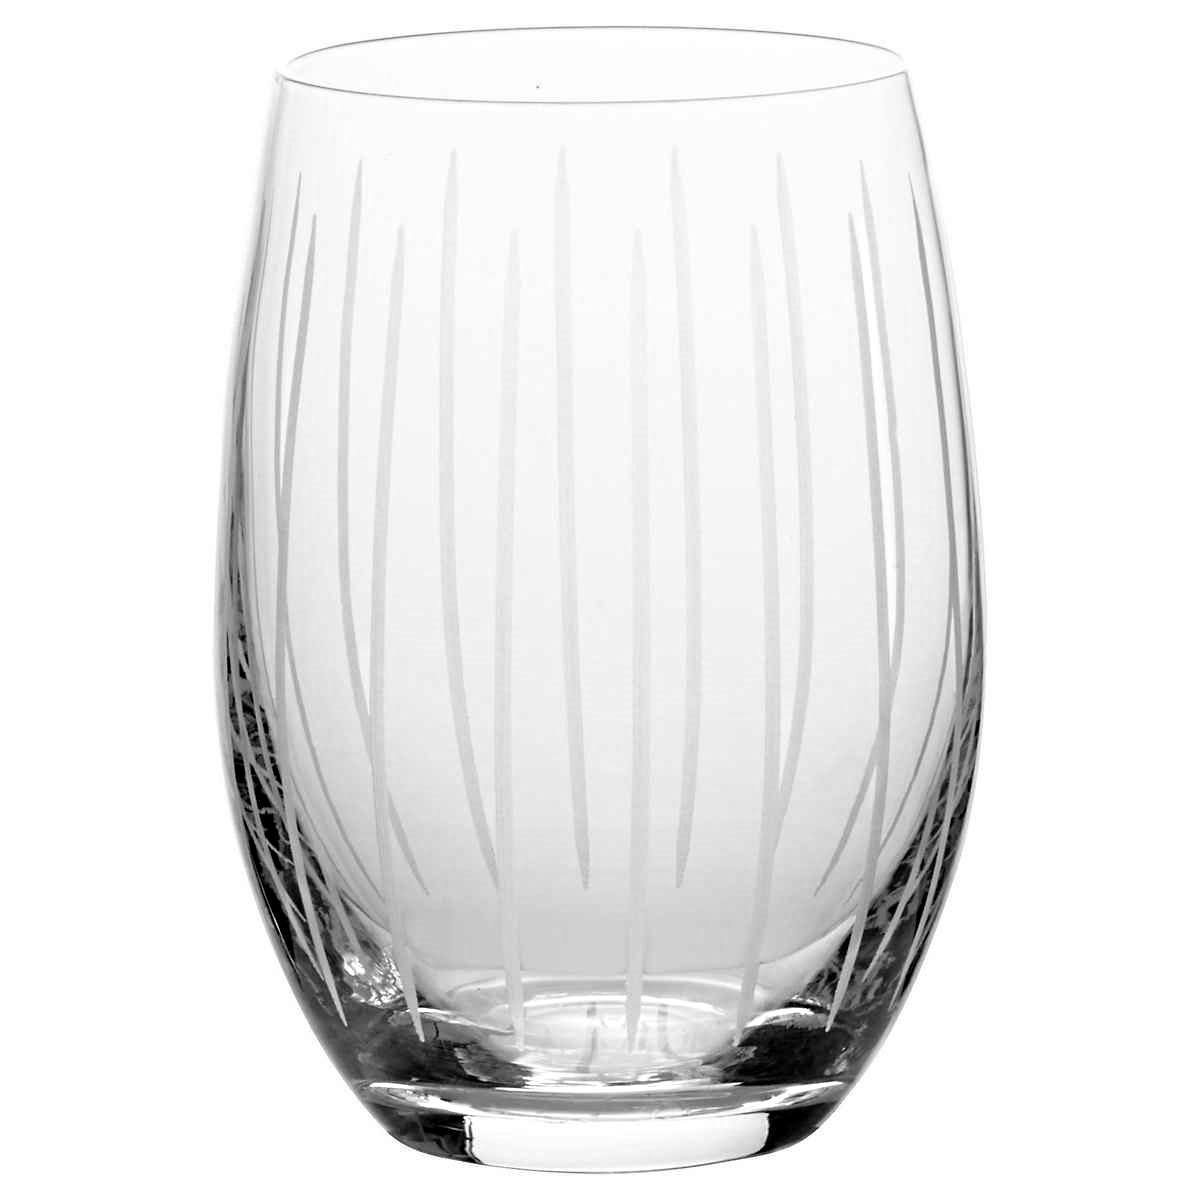 Mikasa Cheers Stemless Etched Wine Glasses, Fine European Lead-Free Crystal, 17-Ounces for Red or White Wine - Set of 6 by Mikasa (Image #7)